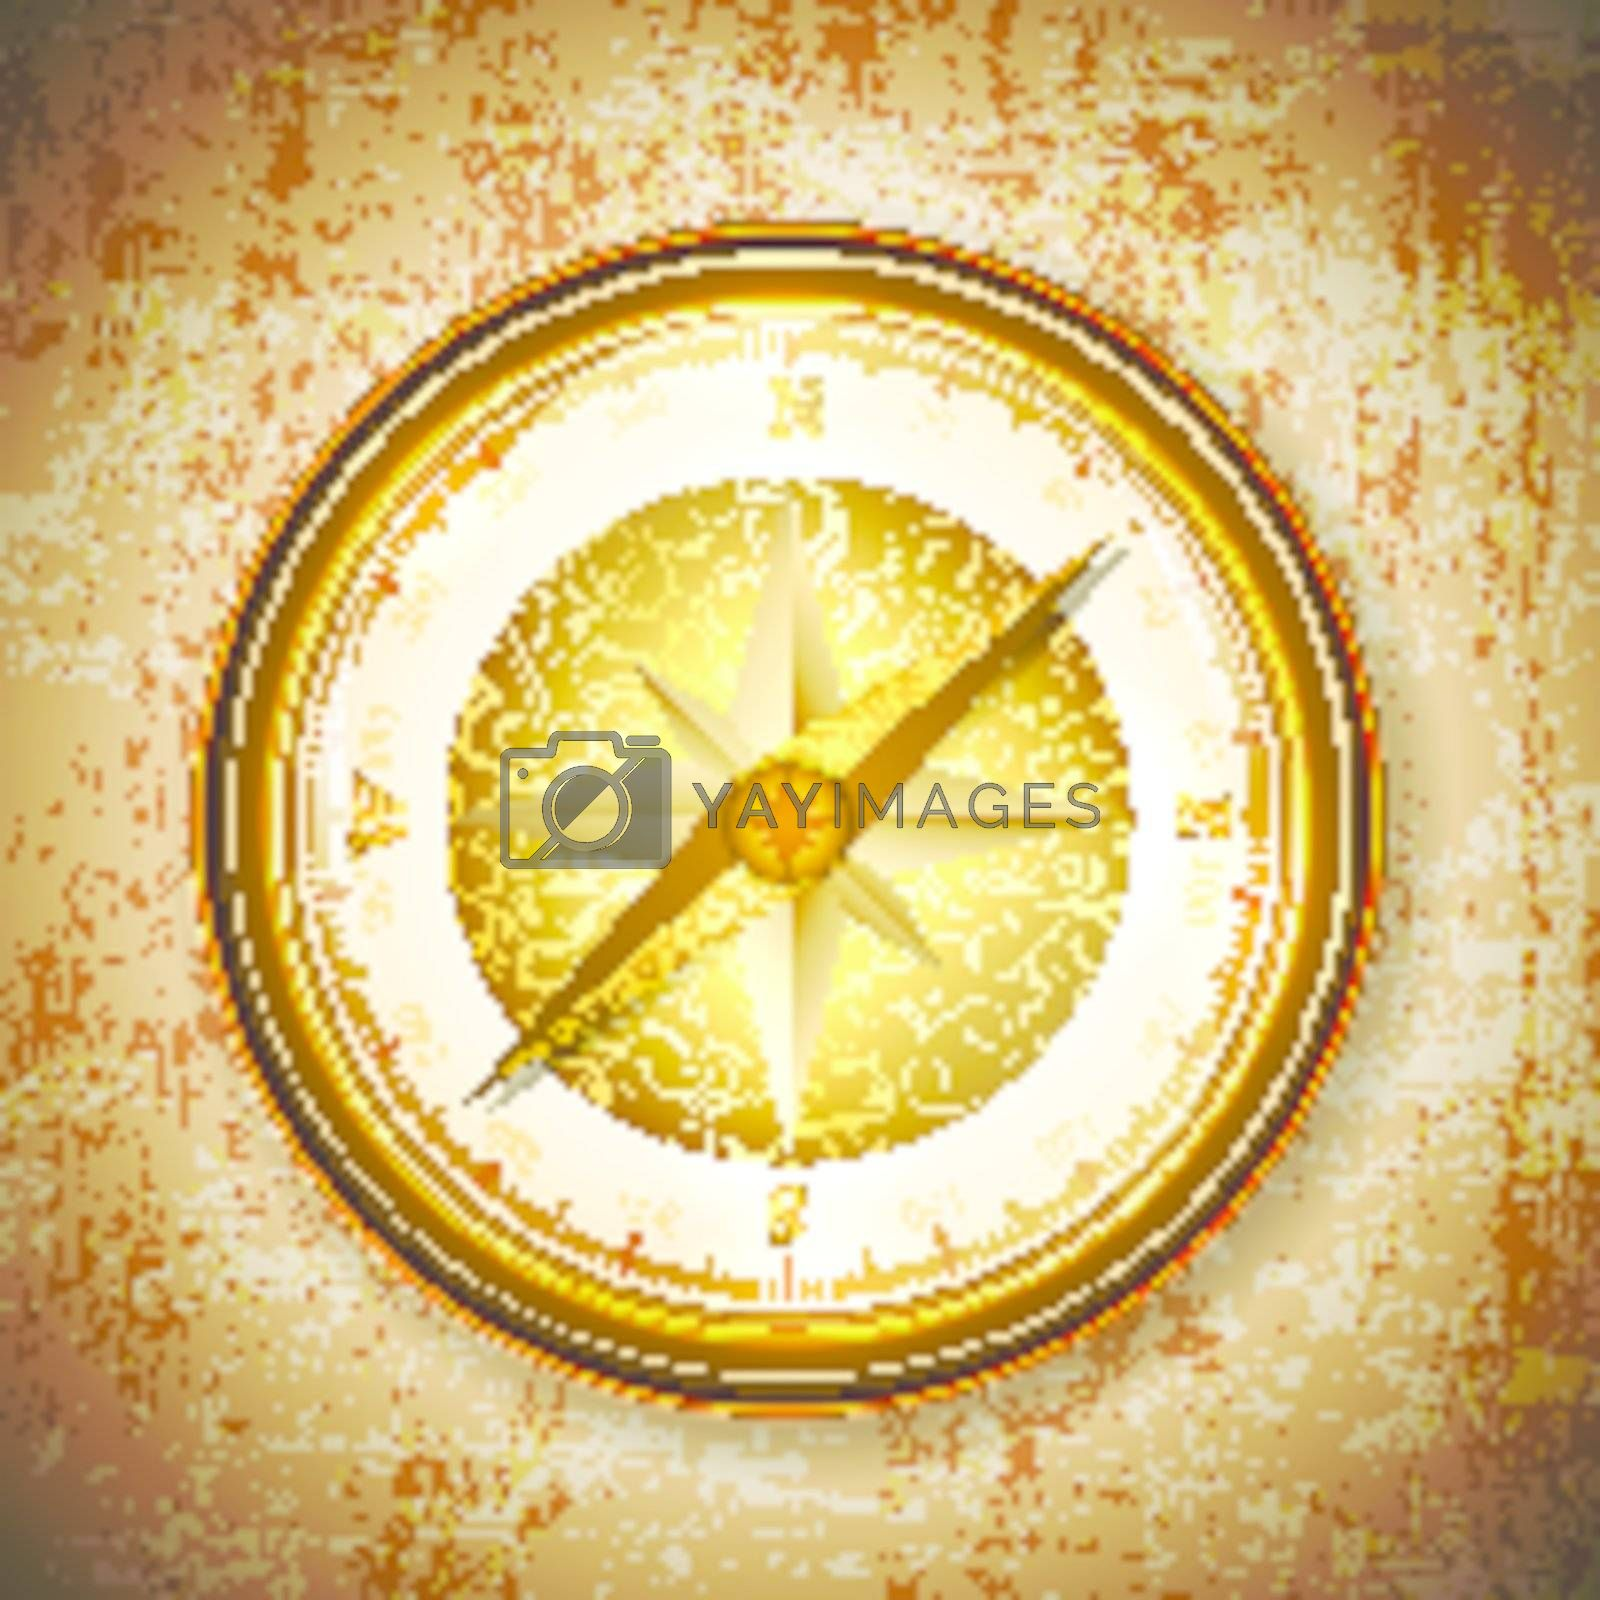 Vintage antique golden compass over grunge background